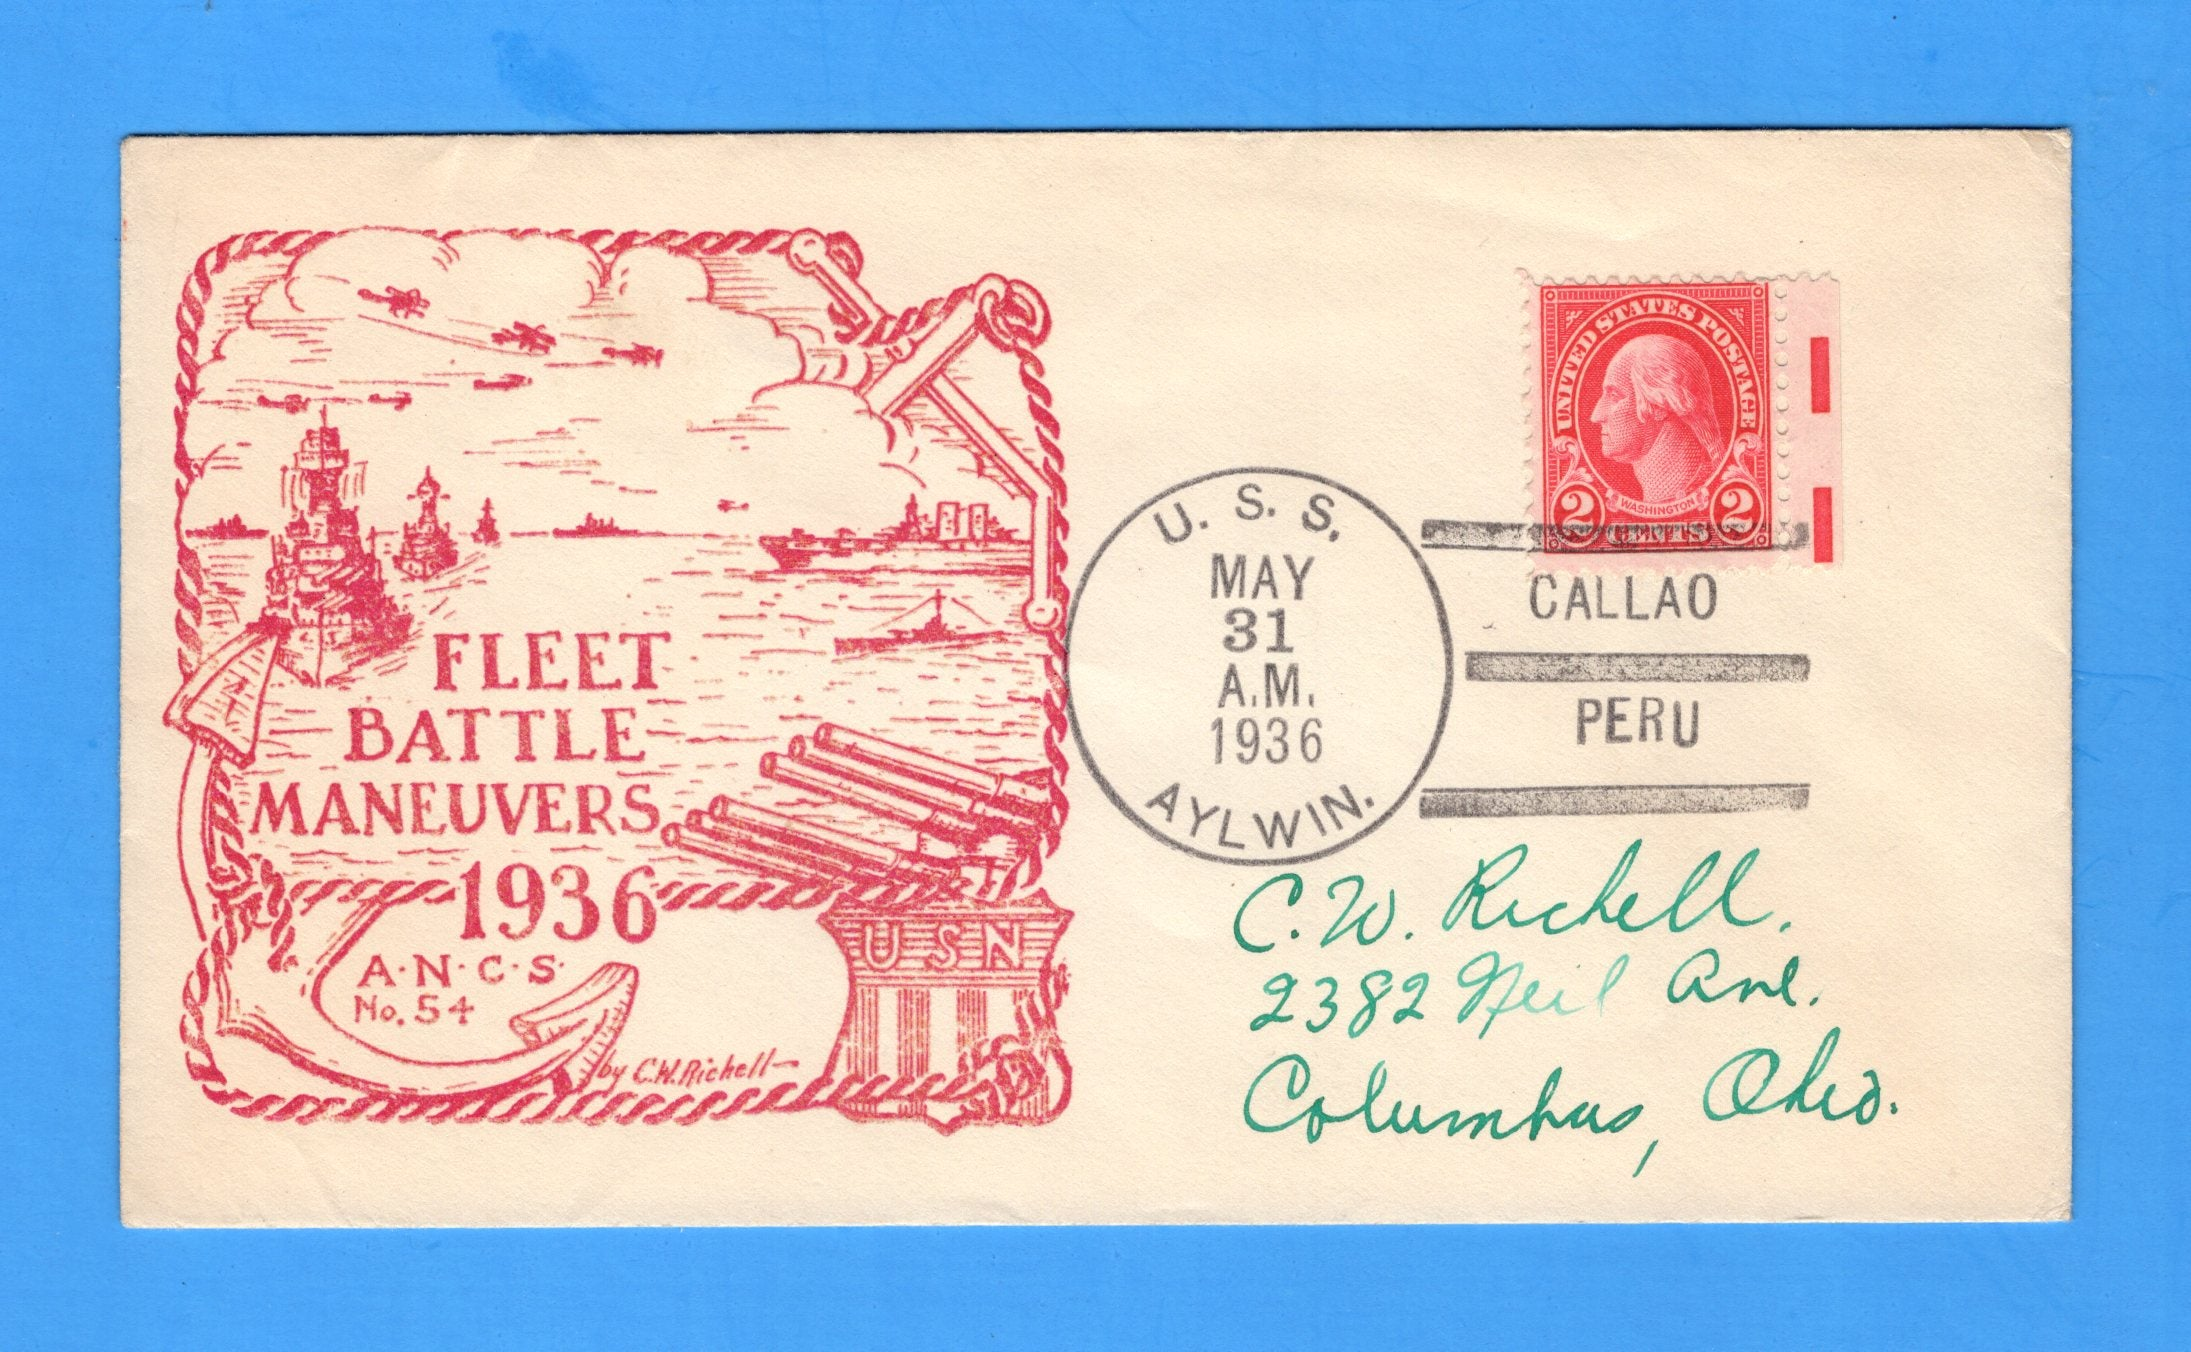 USS Aylwin DD-355 Fleet Battle Maneuvers Callao, Peru May 31, 1936 - Raised Print Cachet